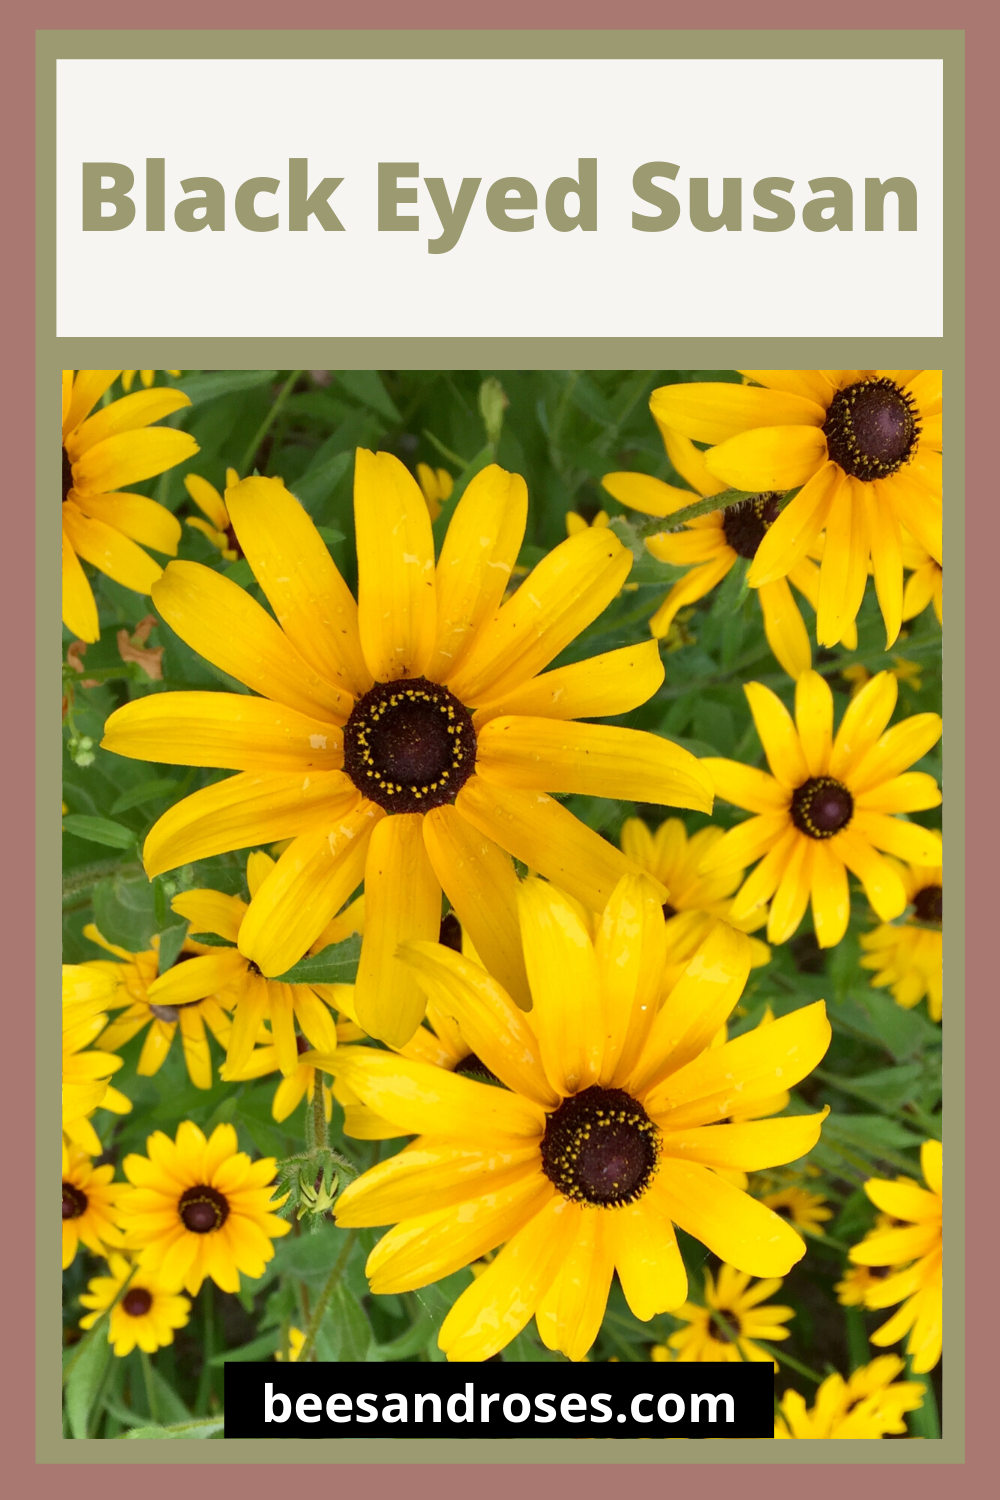 The black eyed susan has long been a perennial favorite. It just looks happy and makes its debut as fall is approaching. It's like one last hoorah before the colder temperatures set in. Learn more about these happy yellow flowers by reading this post. #blackeyedsusan #plantguide #plantcare #beesandrosesblog